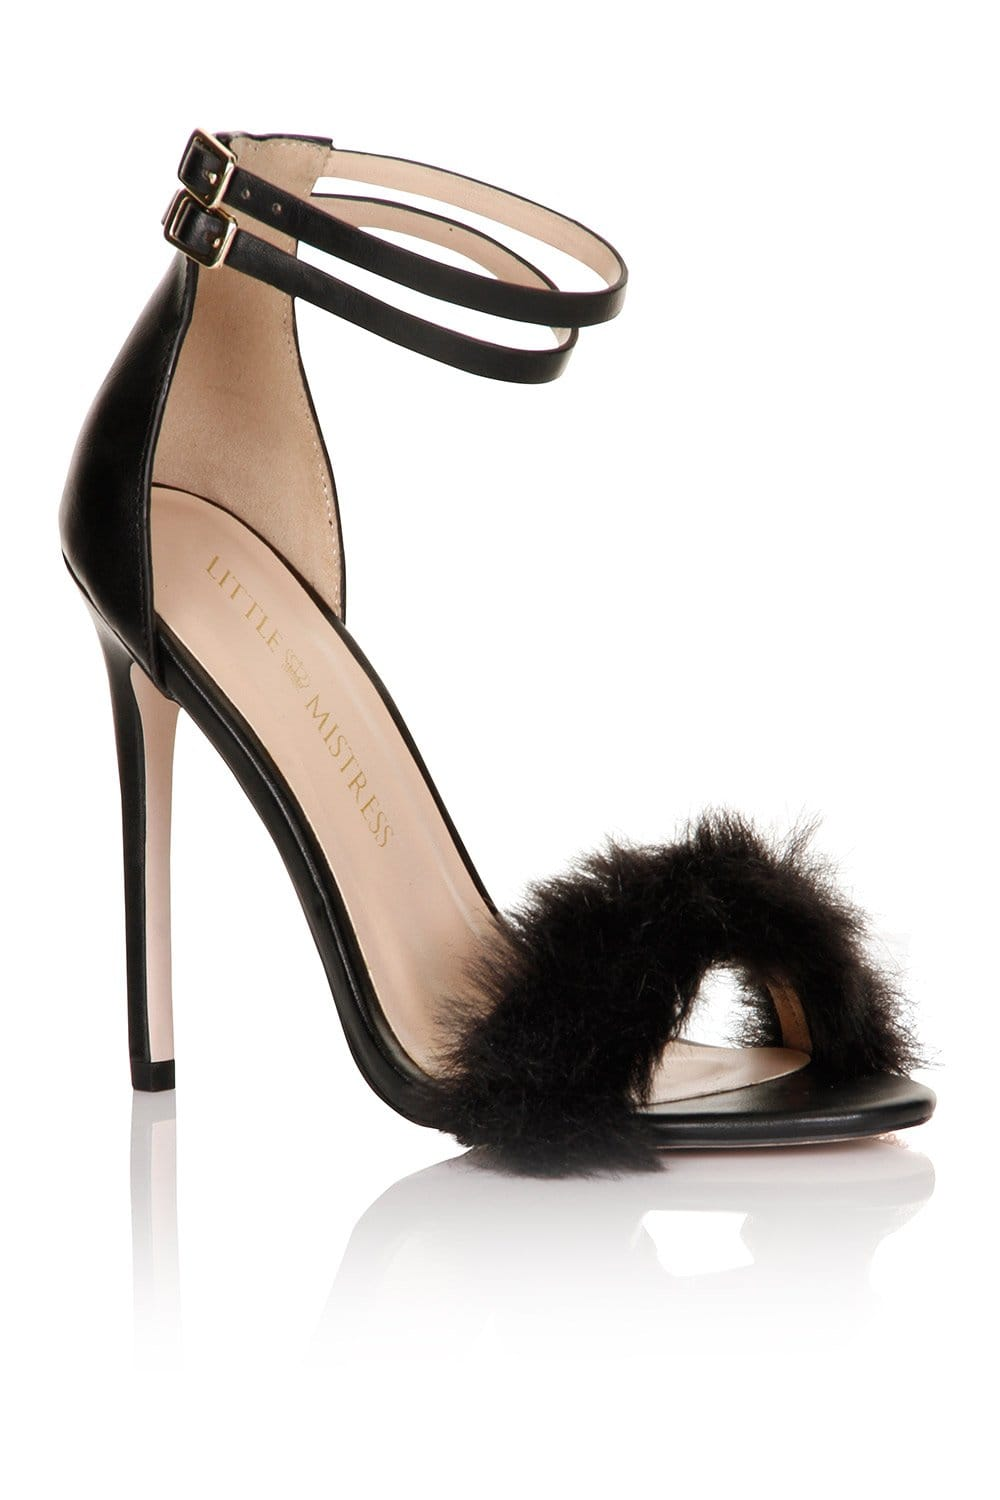 Little Mistress Footwear Black Fur / Double Ankle Strap Heel